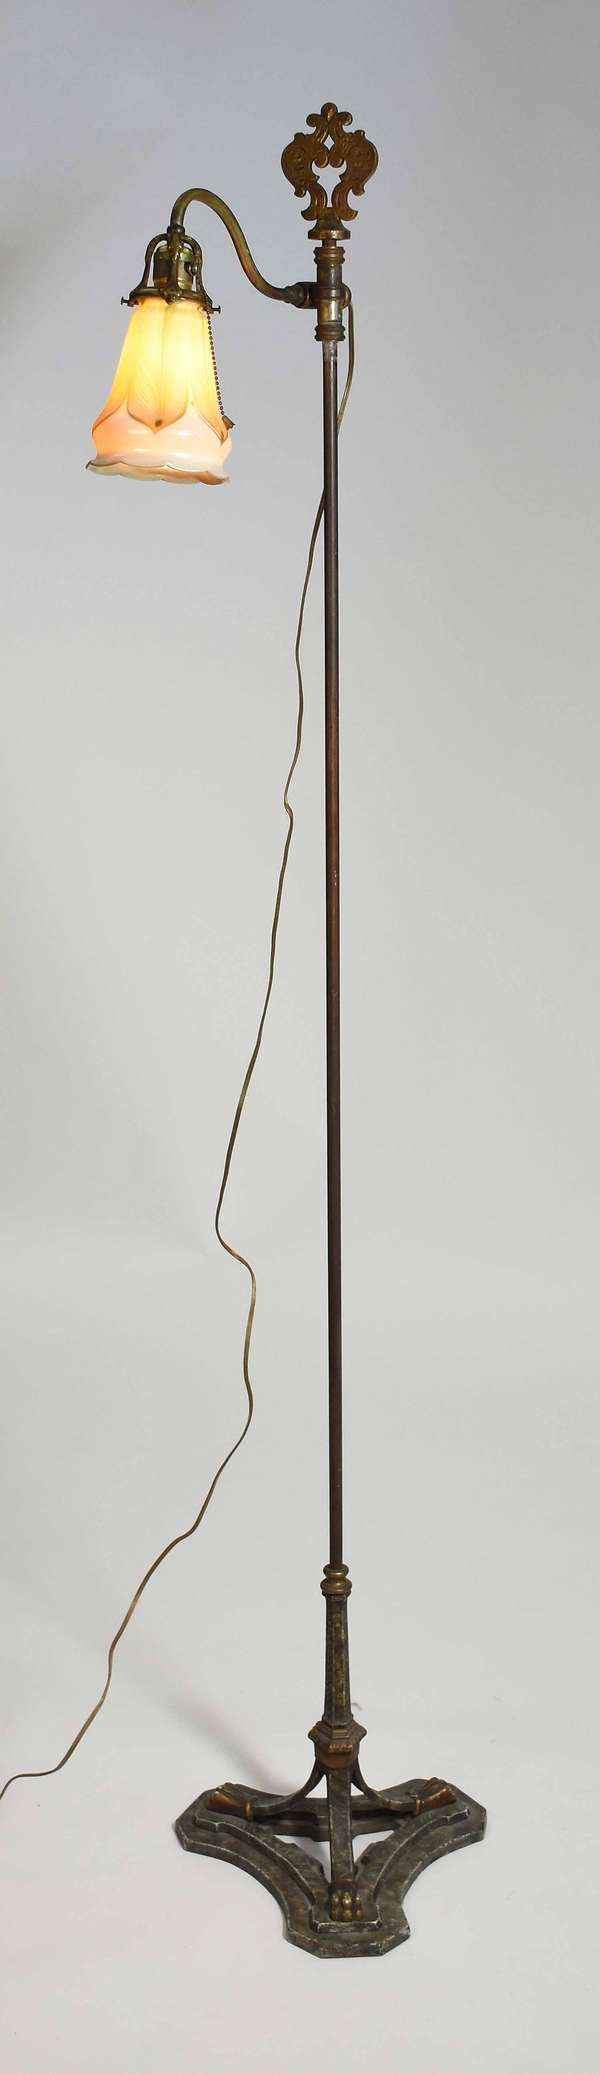 """Bronze floor lamp in a tri paw footed base, with an art glass shade, both unsigned, shade 5.75""""L, overall 65.5""""H. Condition: very good, some scuffing to top of shade, no other damage"""